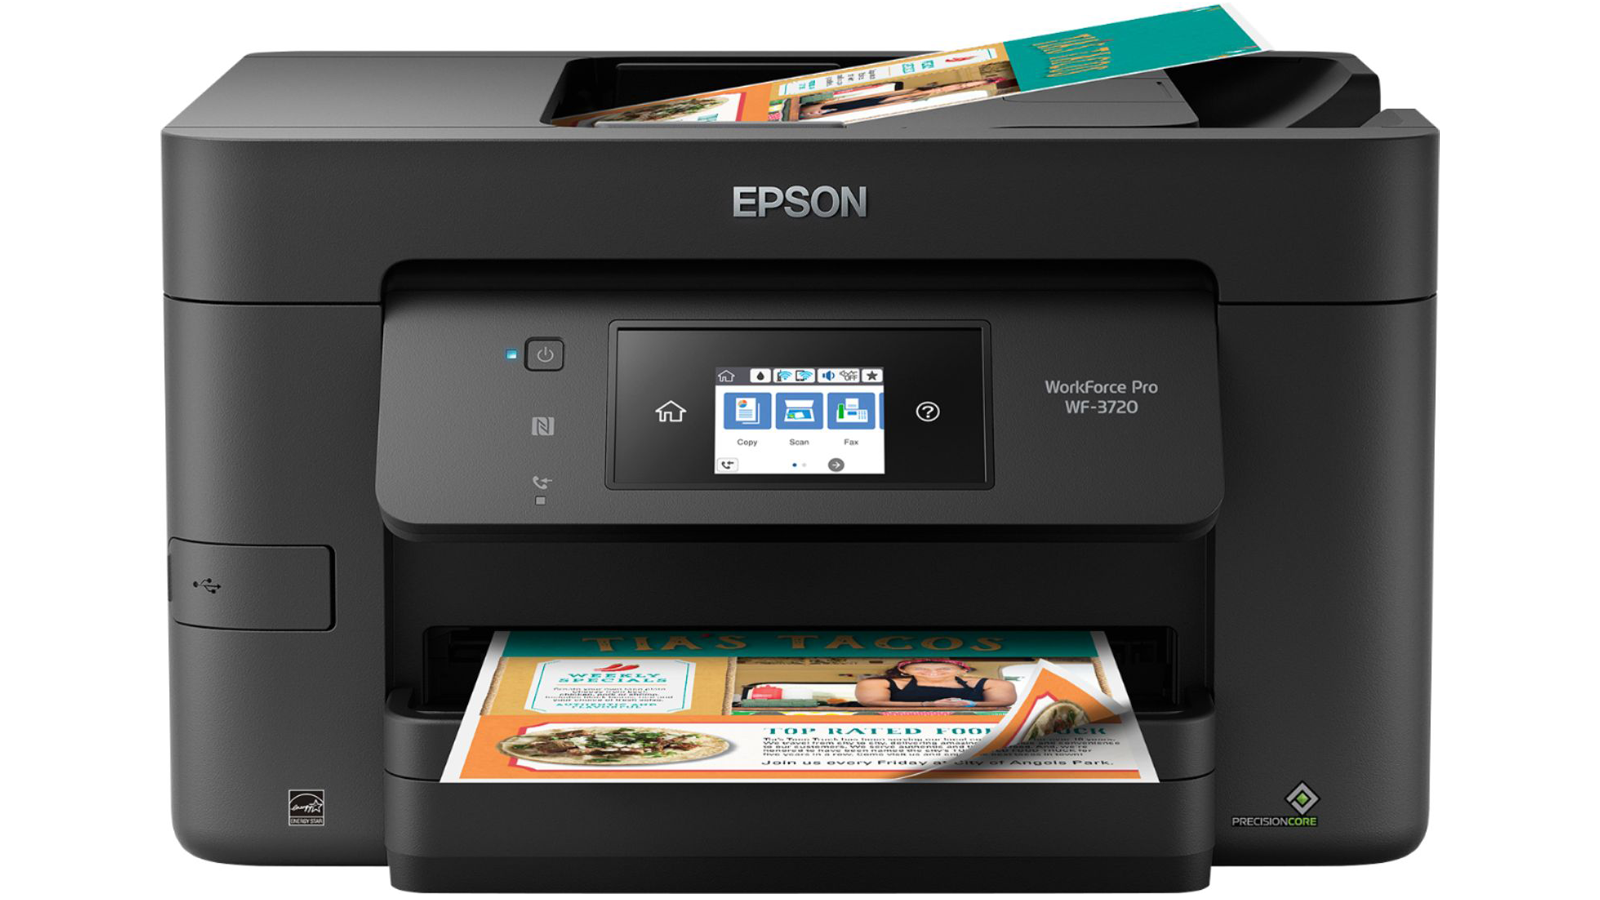 Epson WorkForce Pro WF-3720 All-in-One Inkjet Printer